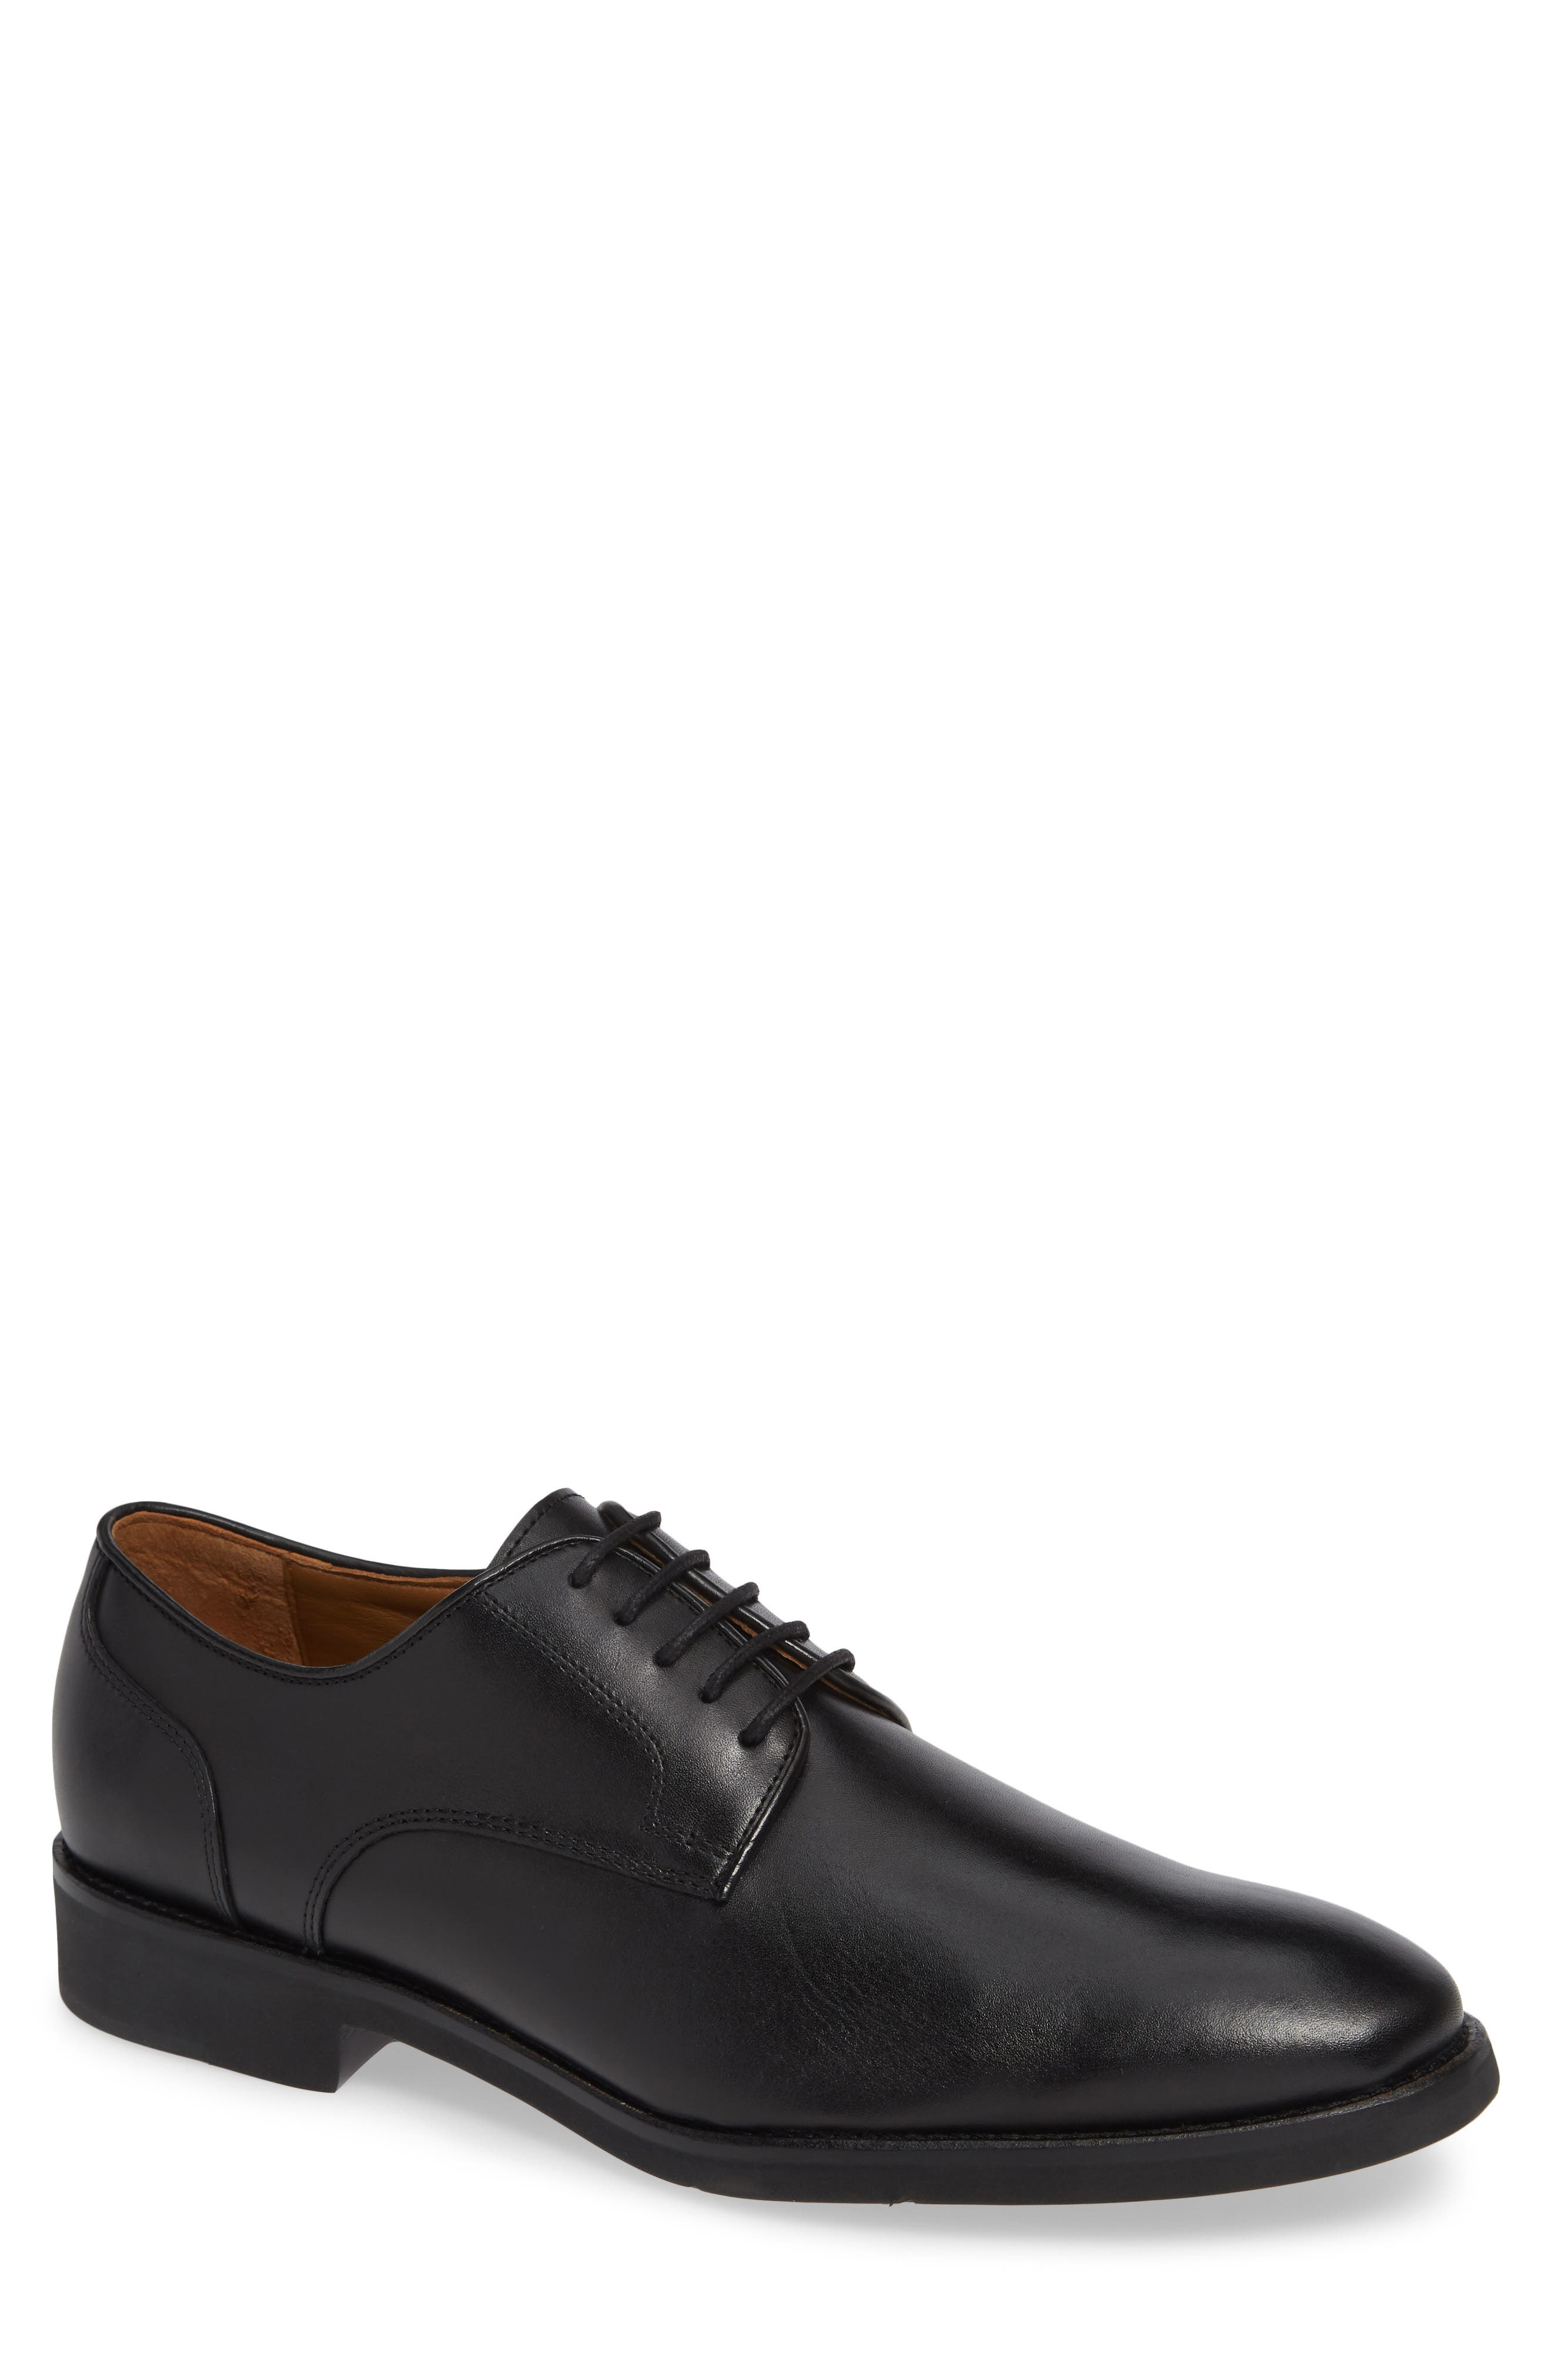 Carlson Derby,                         Main,                         color, BLACK LEATHER